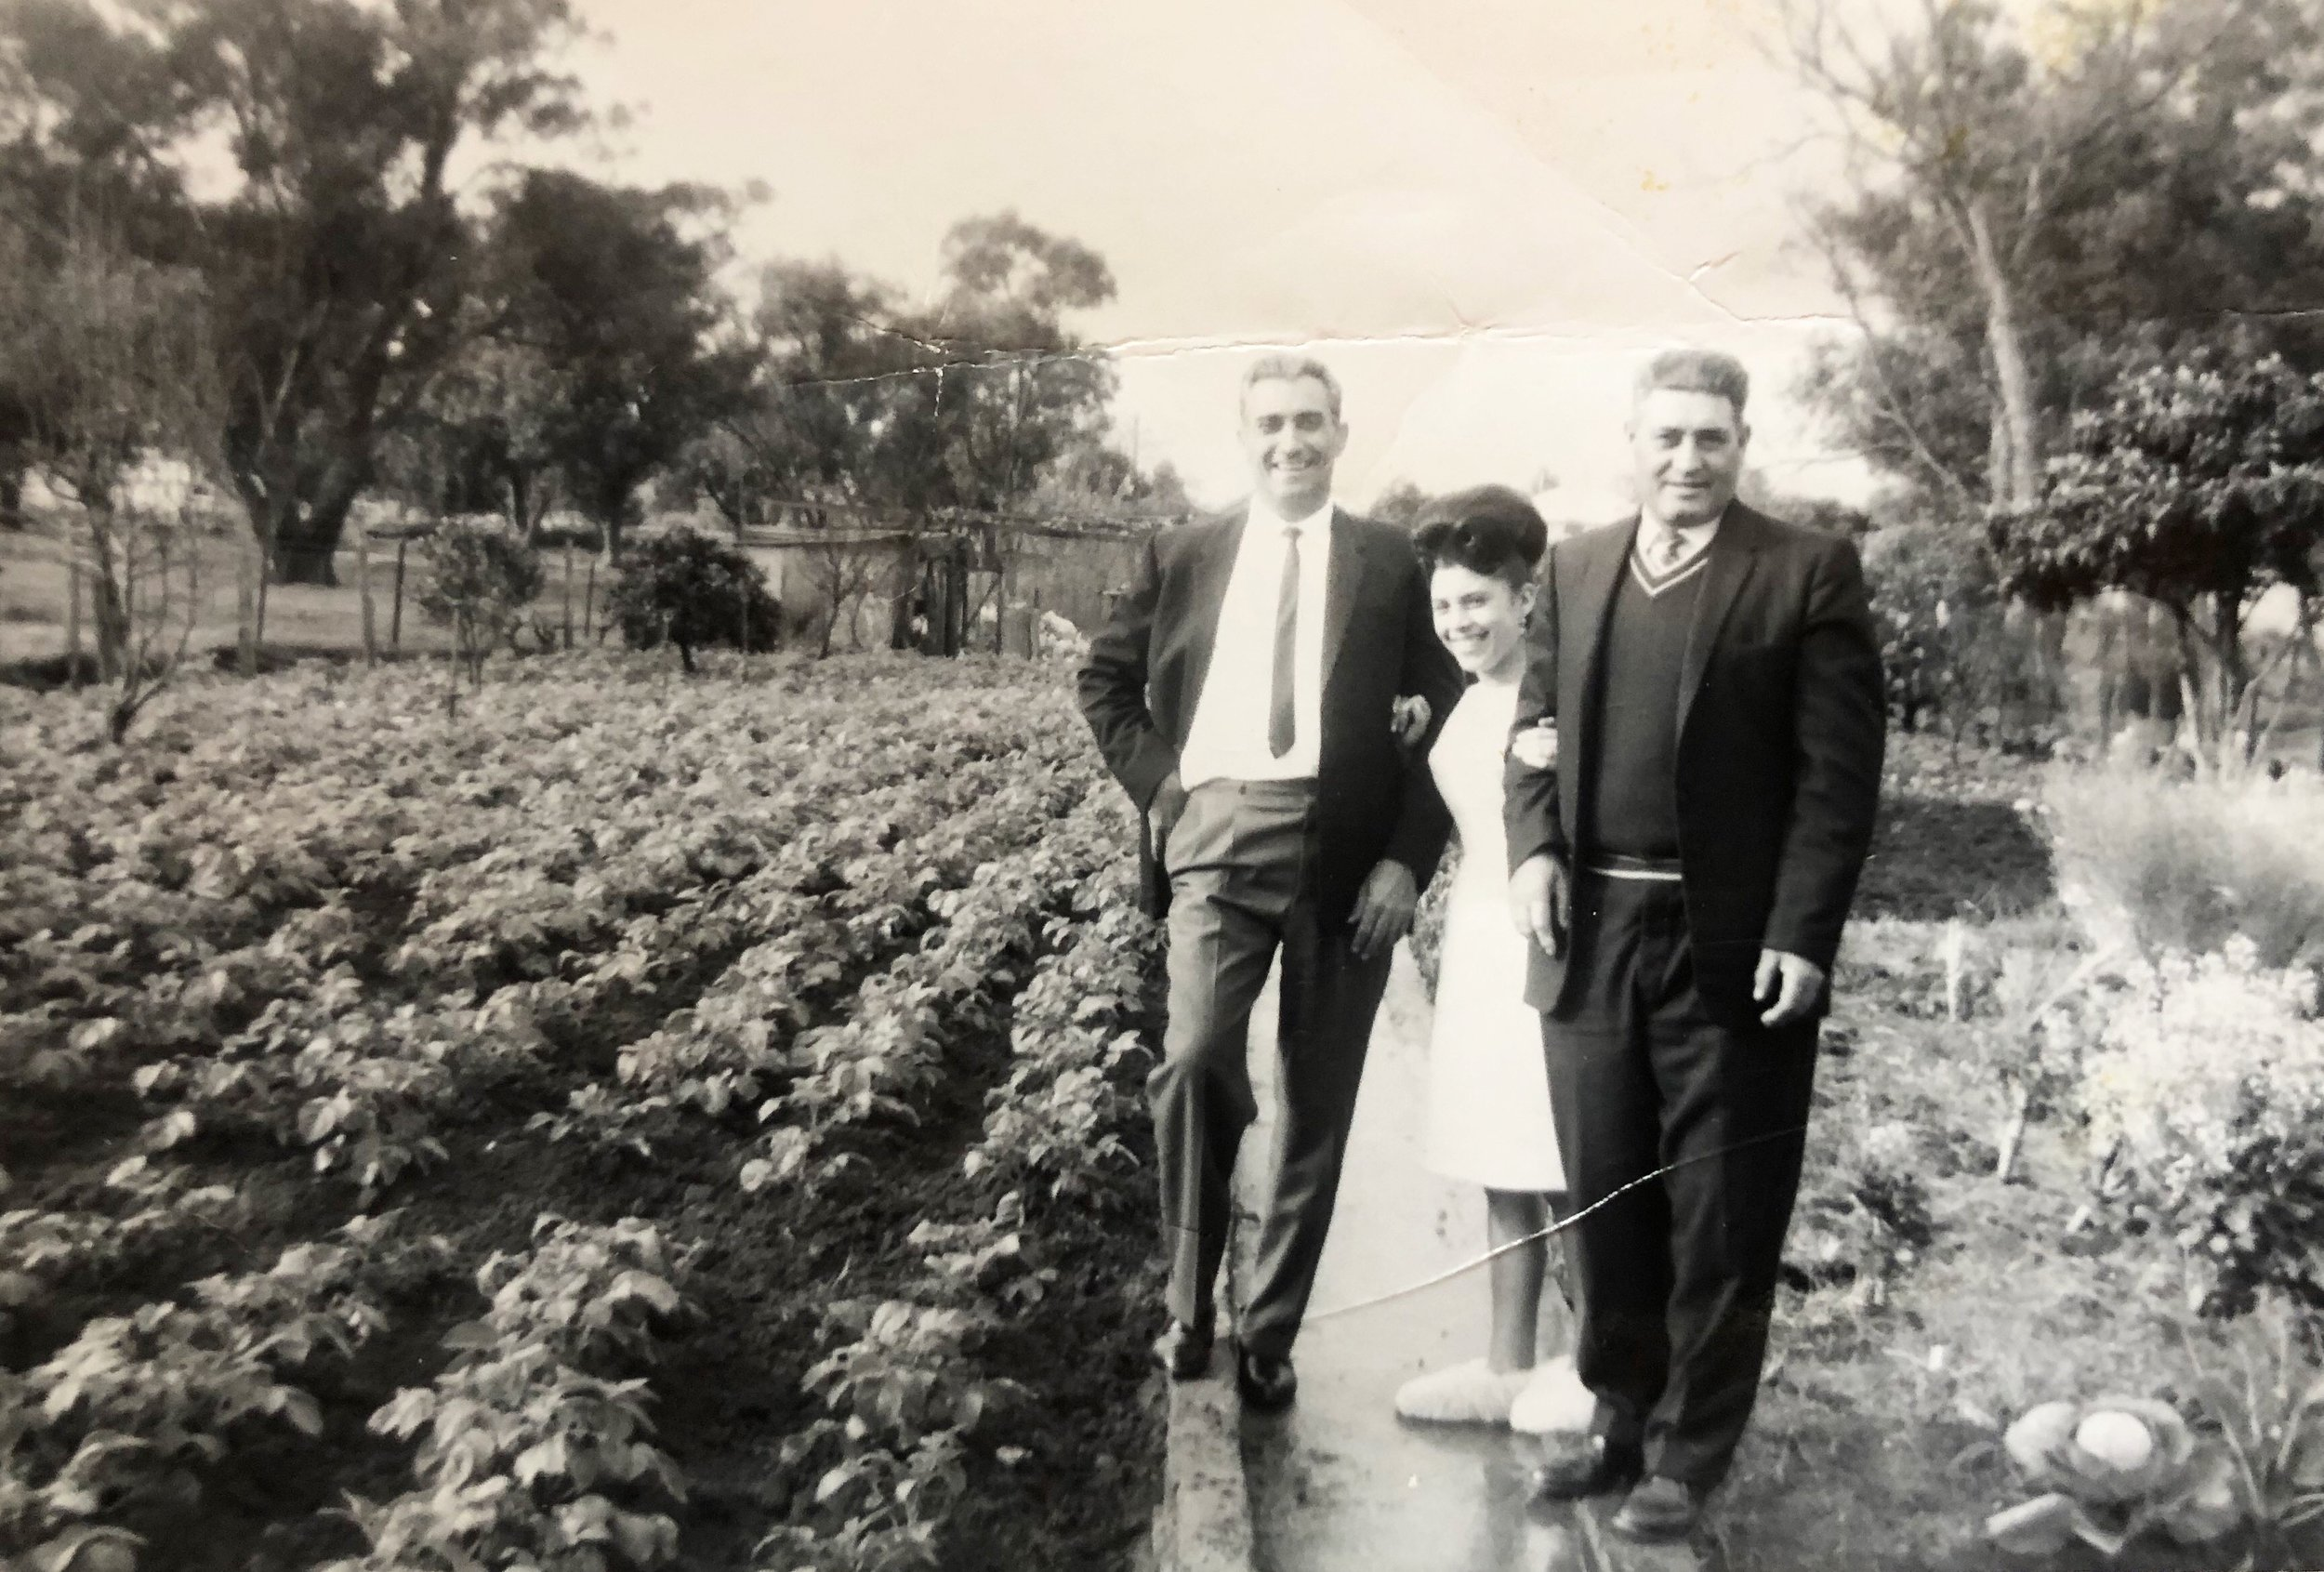 Nonno Giuseppe settled in Australia with his veggie patch